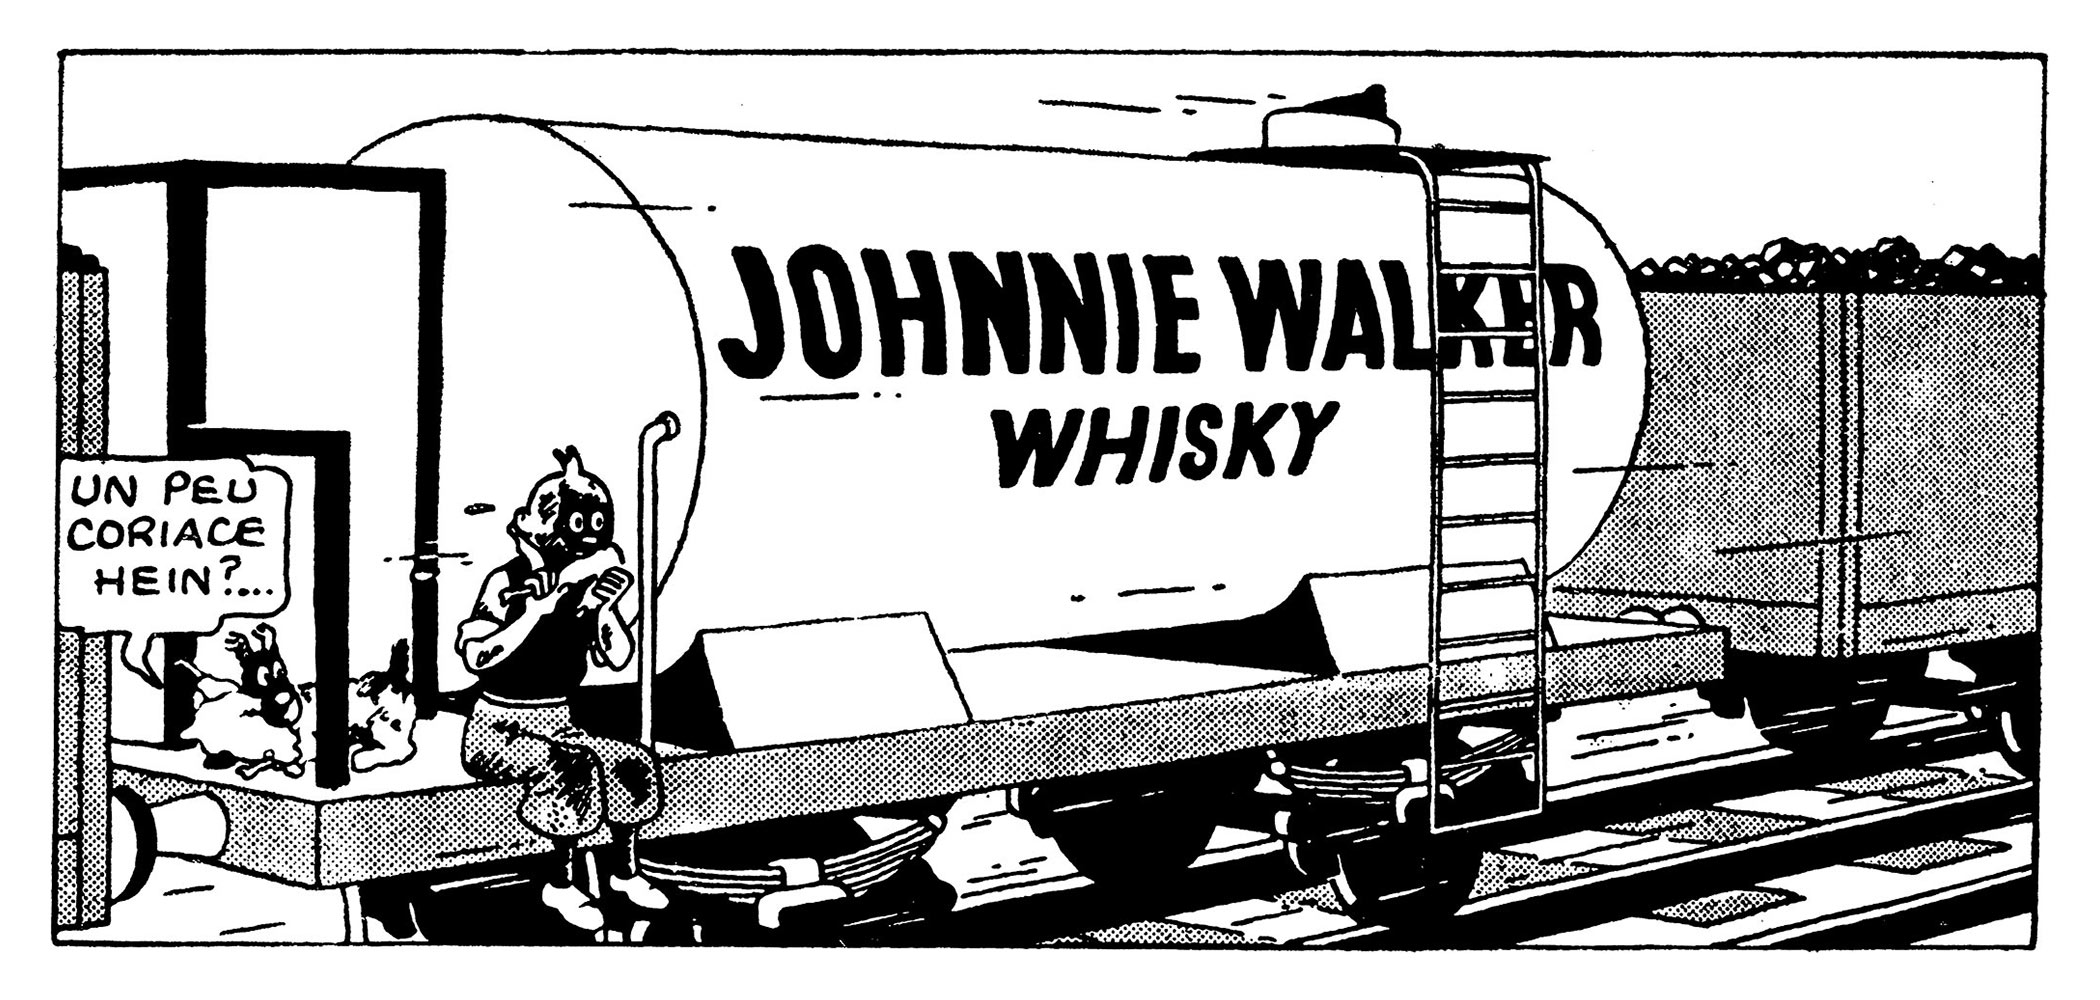 Ile noire Tintin sur le train Johnnie Walker Whisky